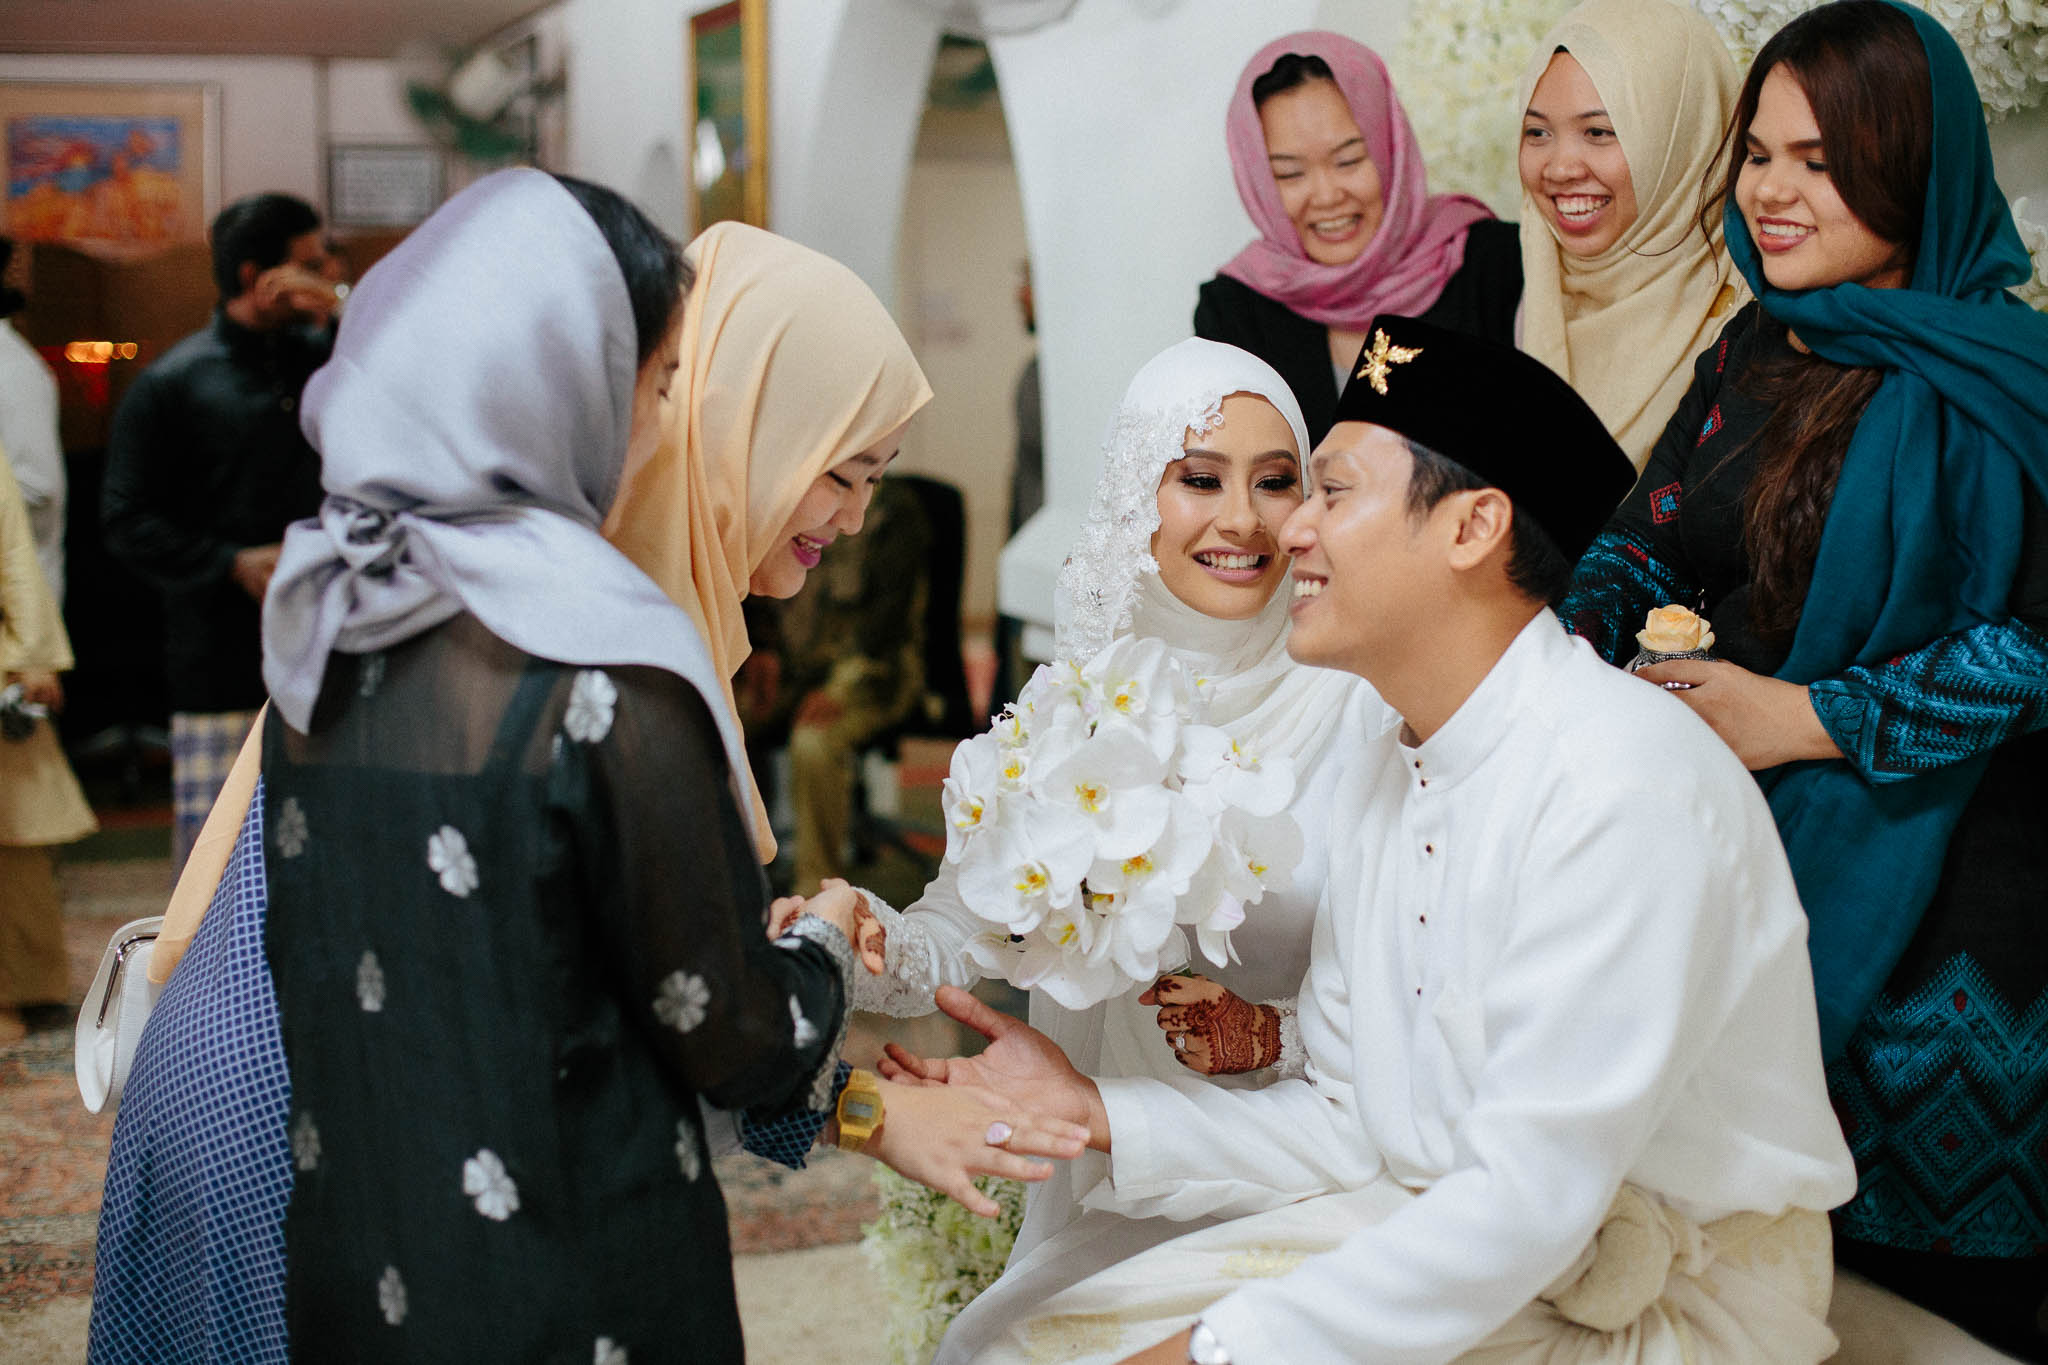 singapore-wedding-photographer-sarah-razif-53.jpg